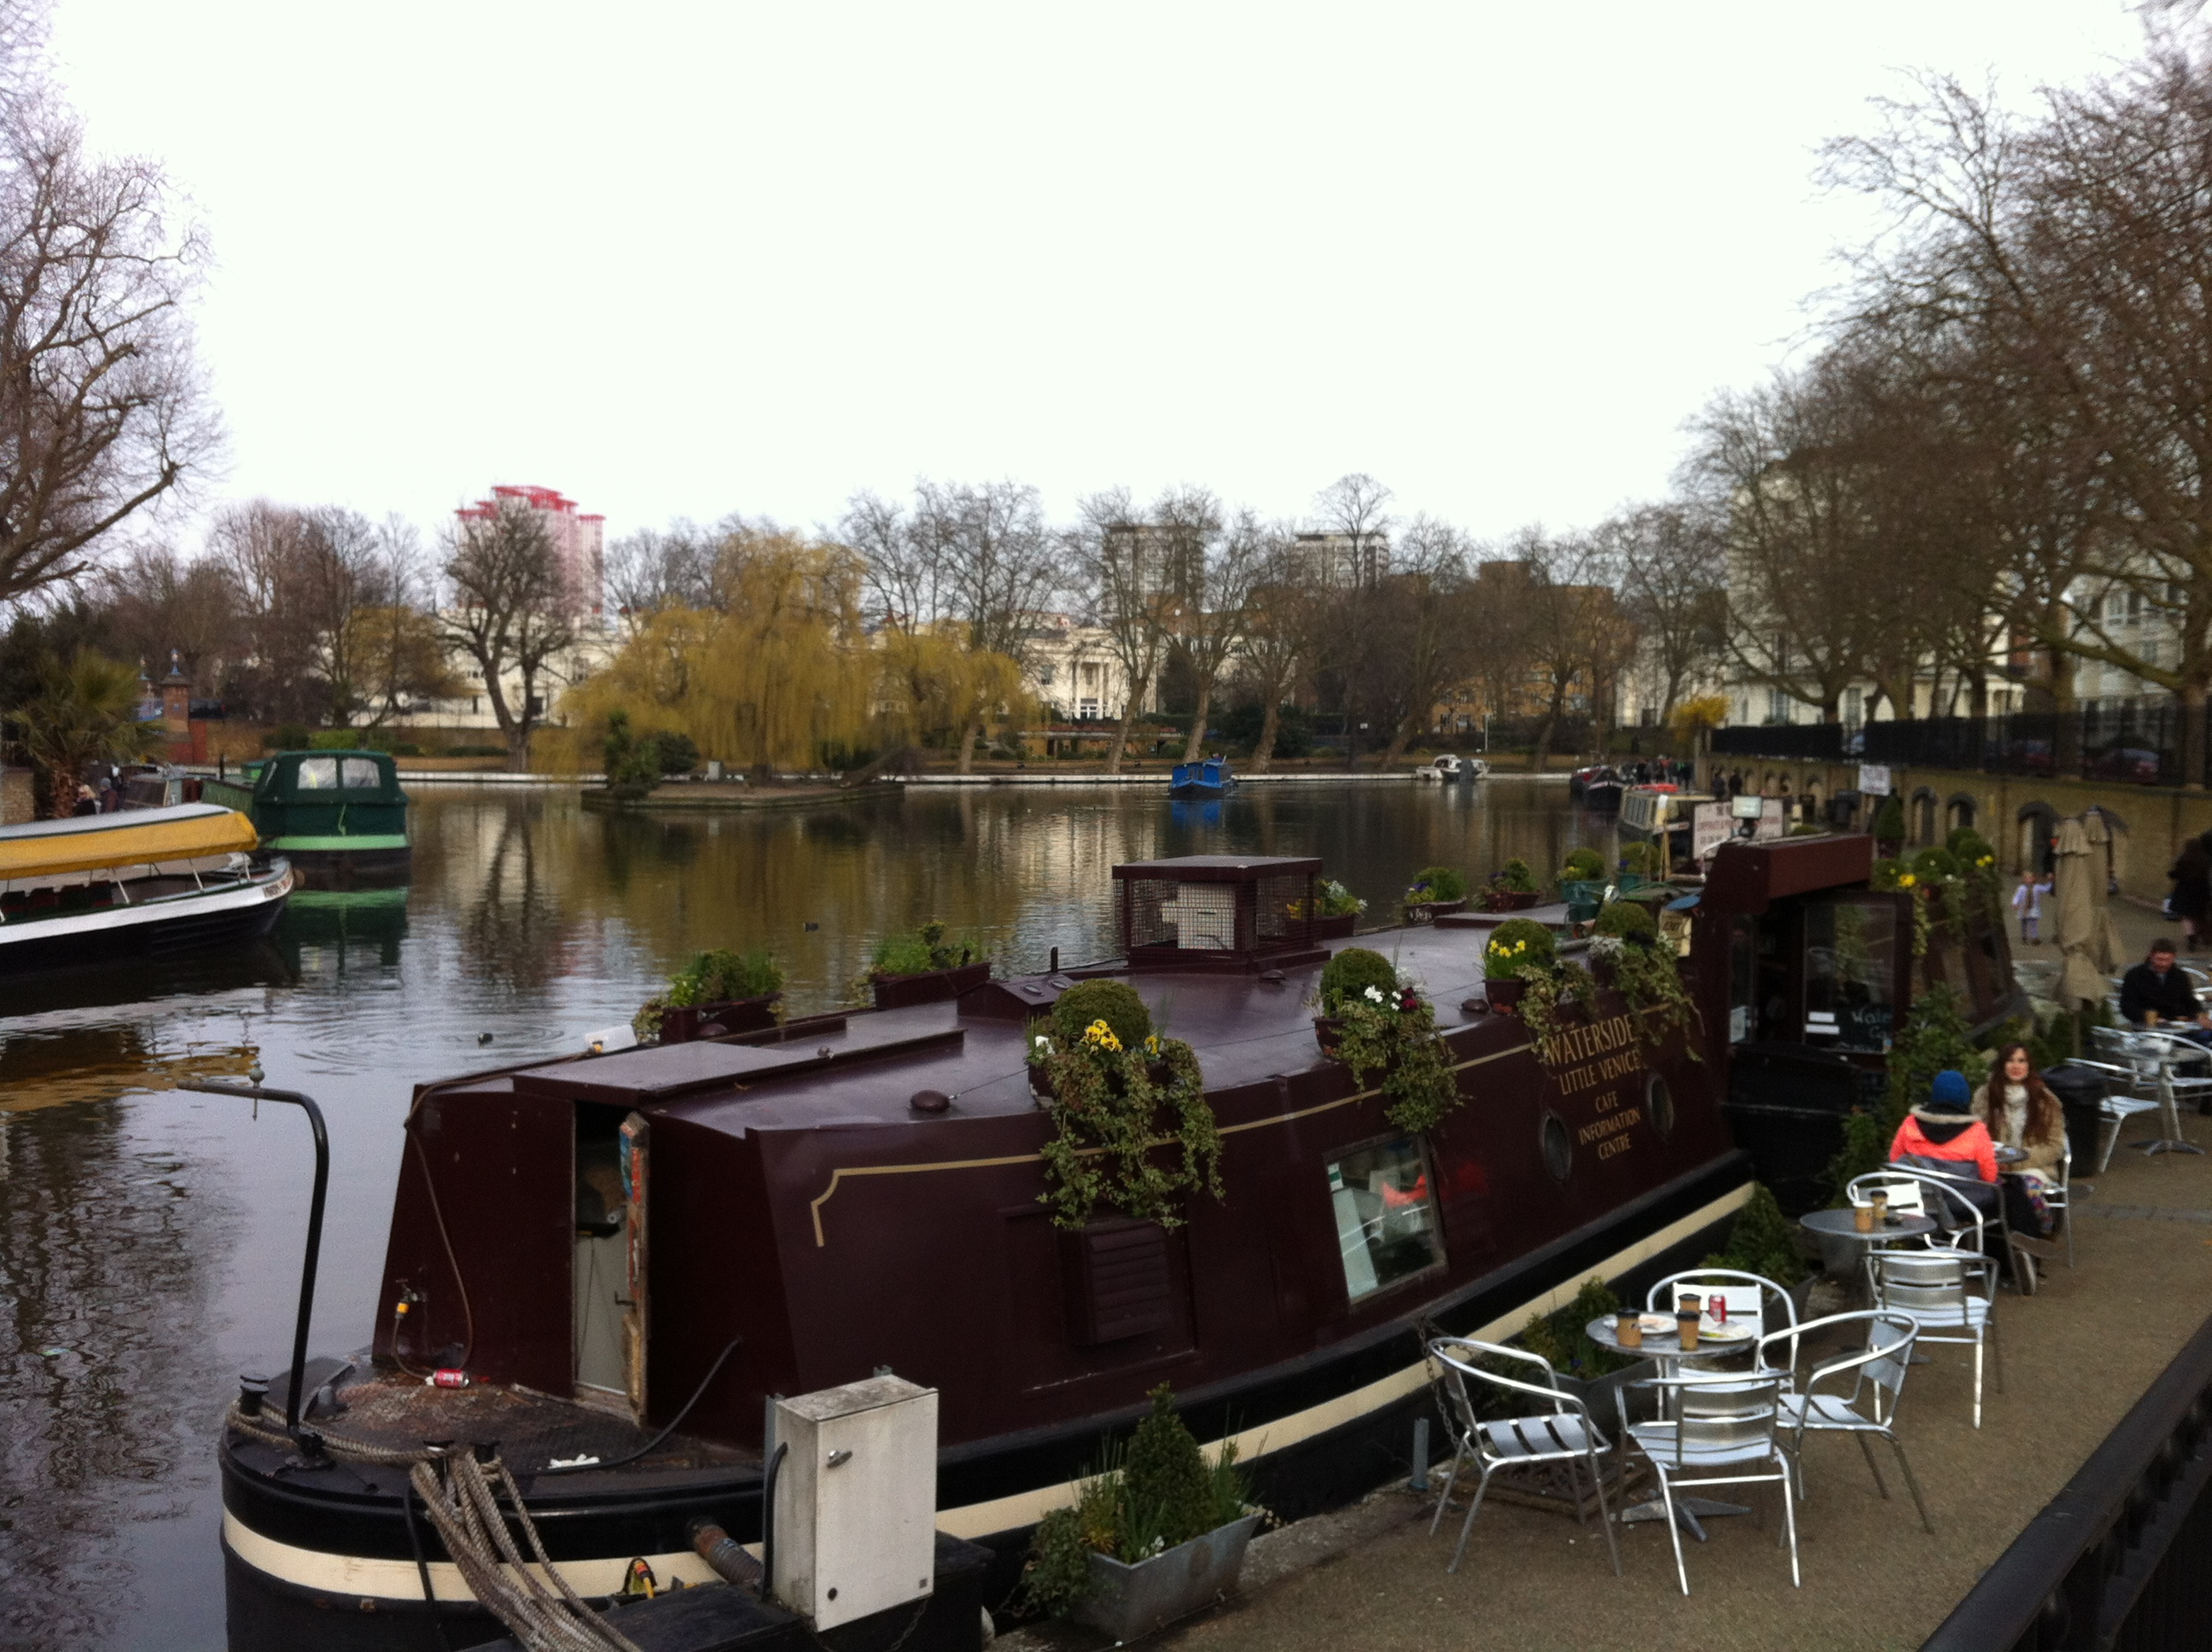 Vista de Little Venice